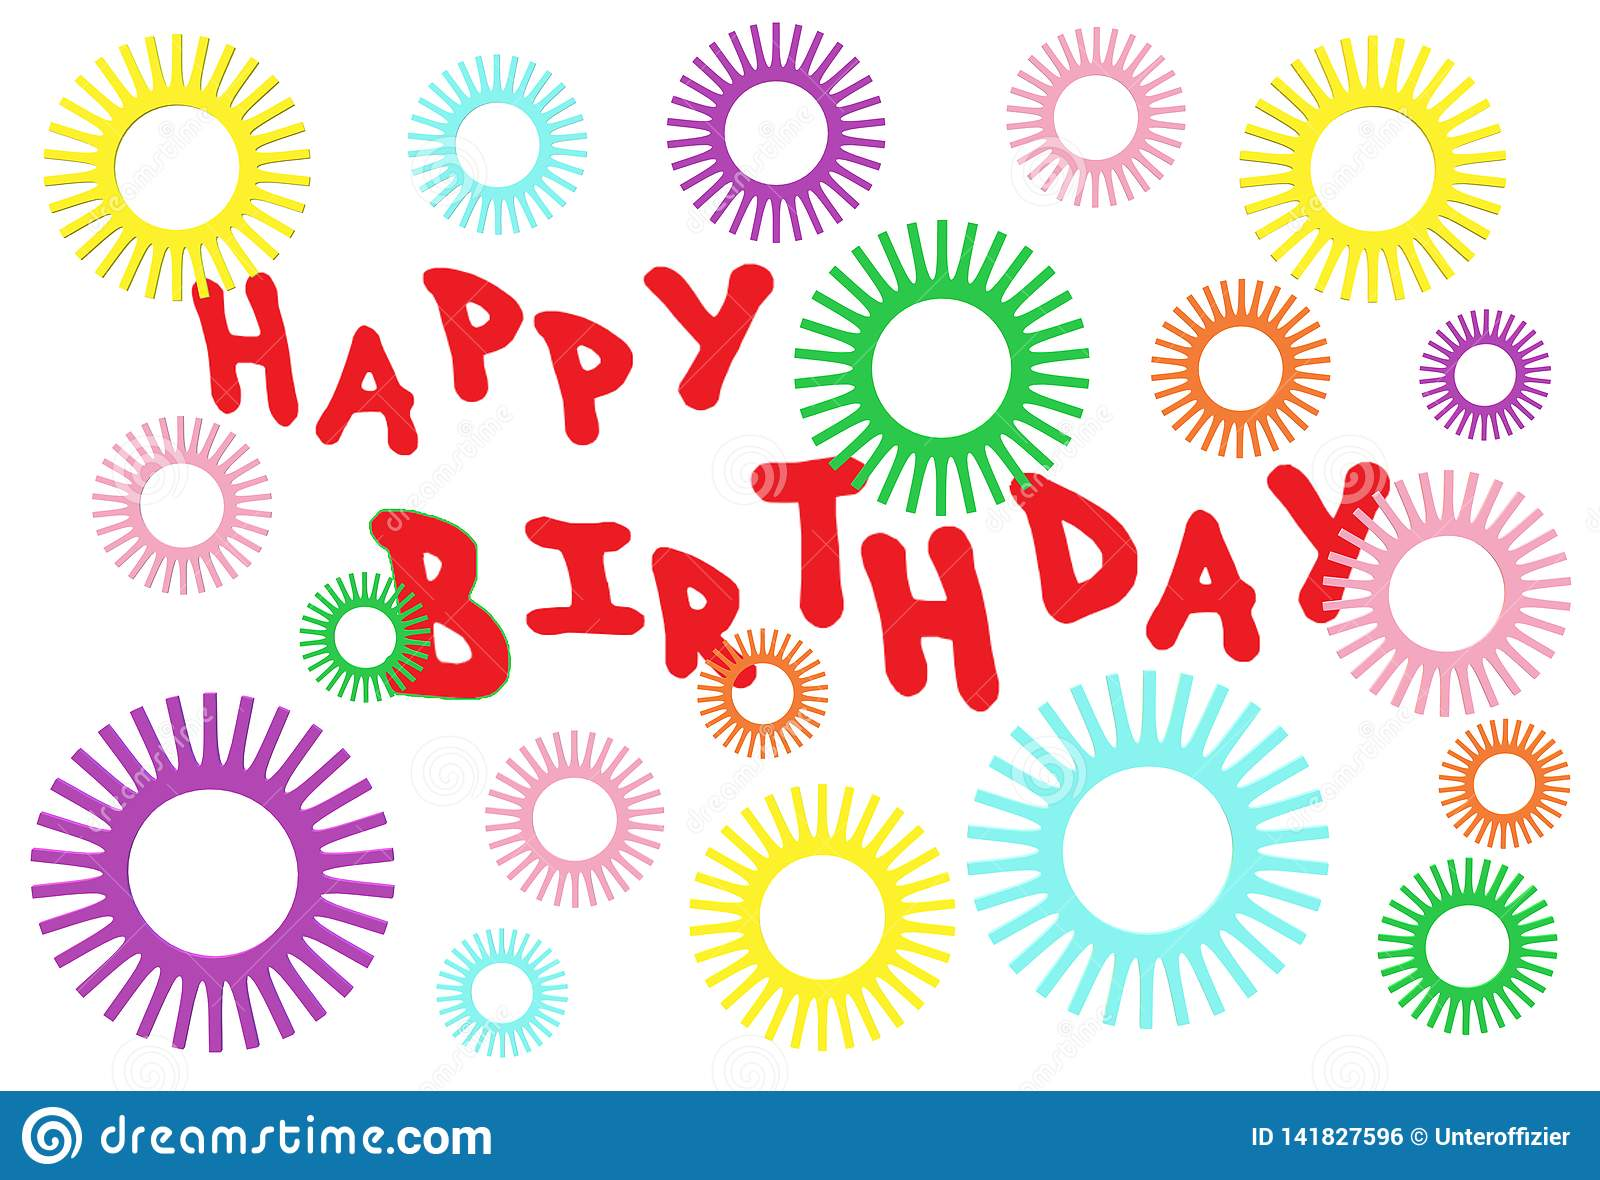 A Birthday Electronic Greeting Card With Star Sparkles And Red Fonts Stock Illustration